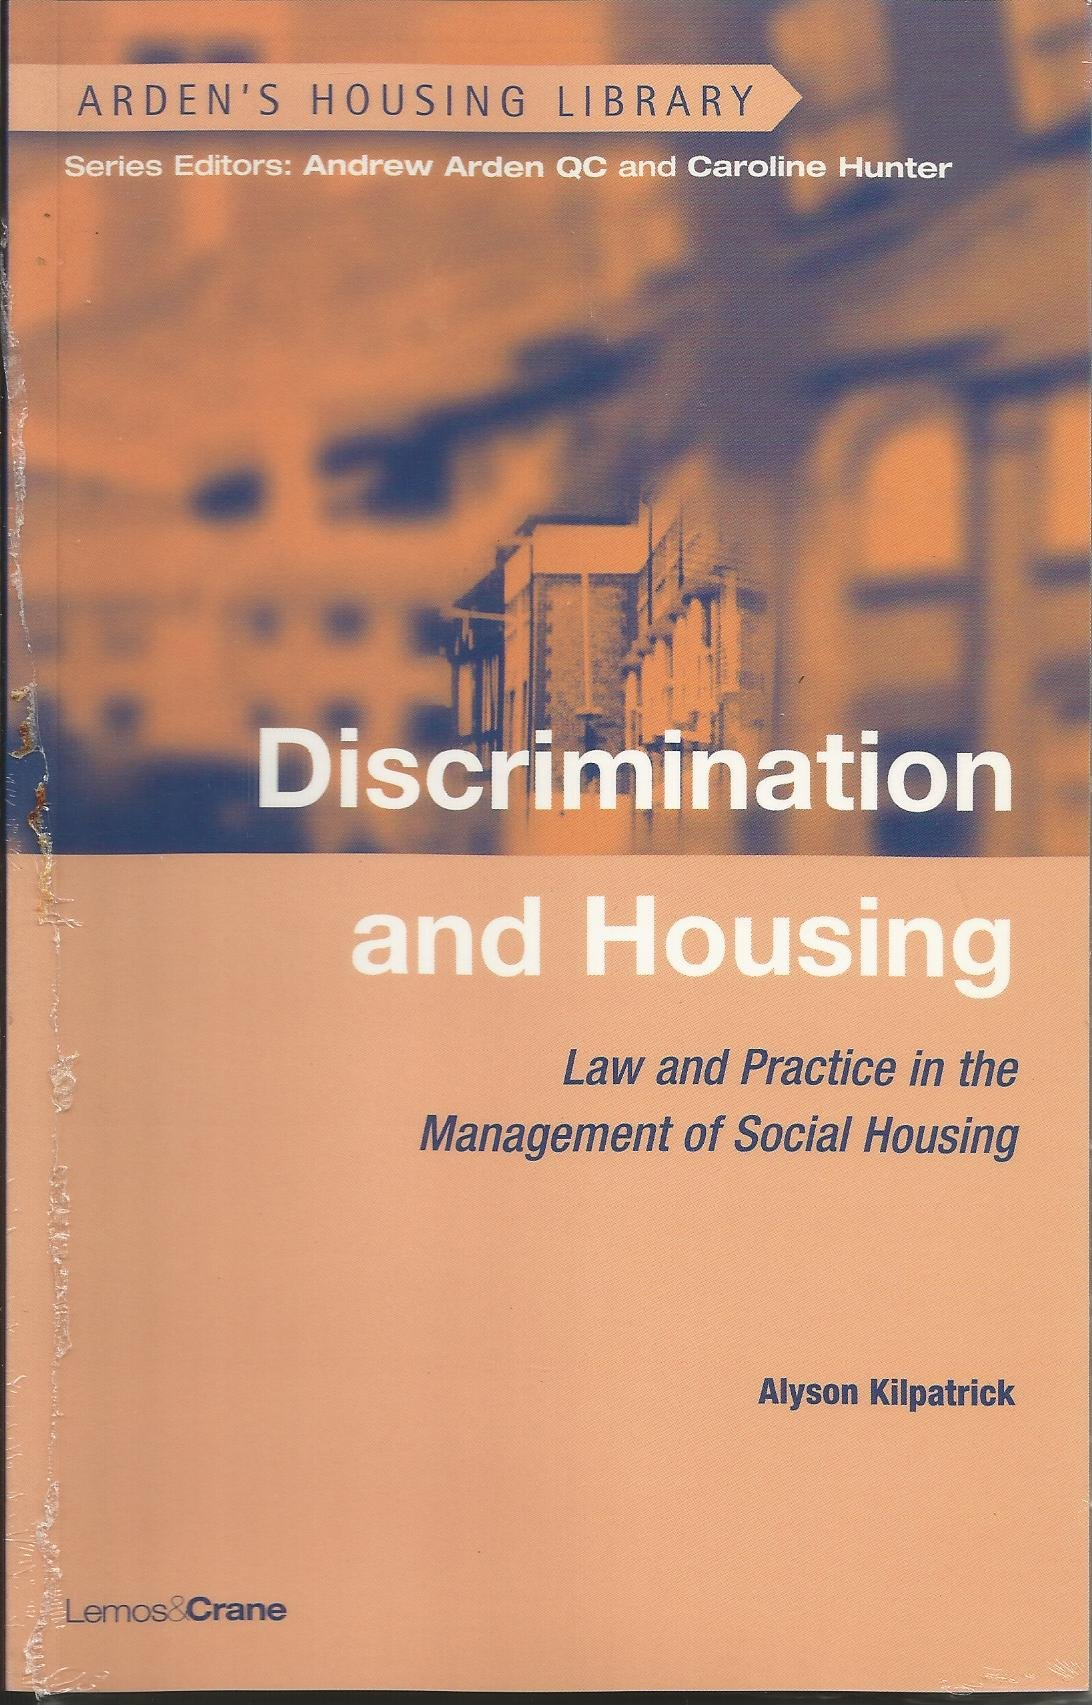 Read Online Discrimination in Housing: Law and Practice in the Management of Social Housing (Arden's Housing Library) pdf epub